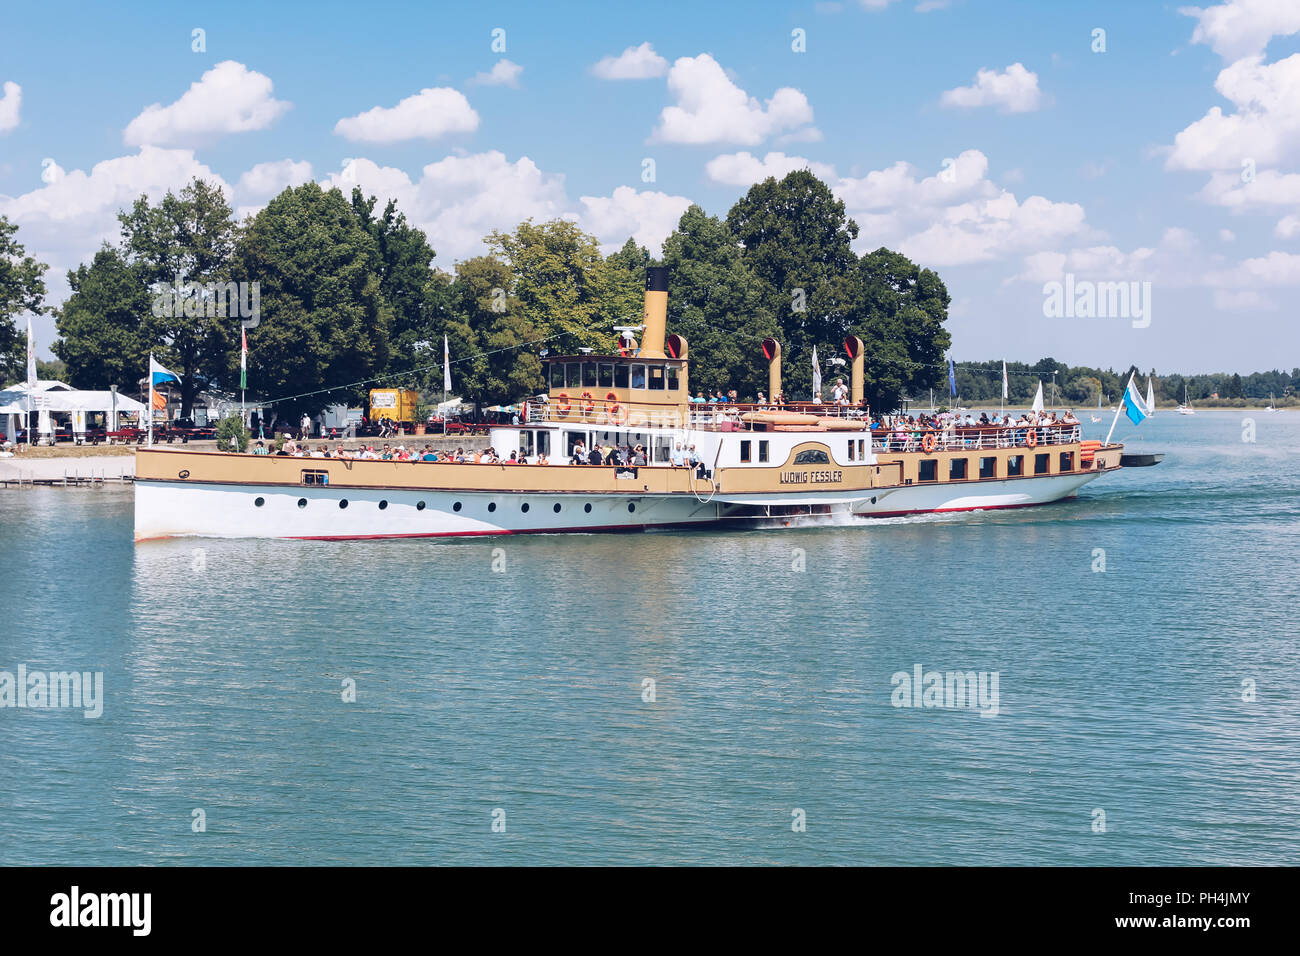 Herreninsel - AUG 2013 - GERMANY - Tourist boat on the Chiemsee lake - Herrenchiemsee. - Stock Image